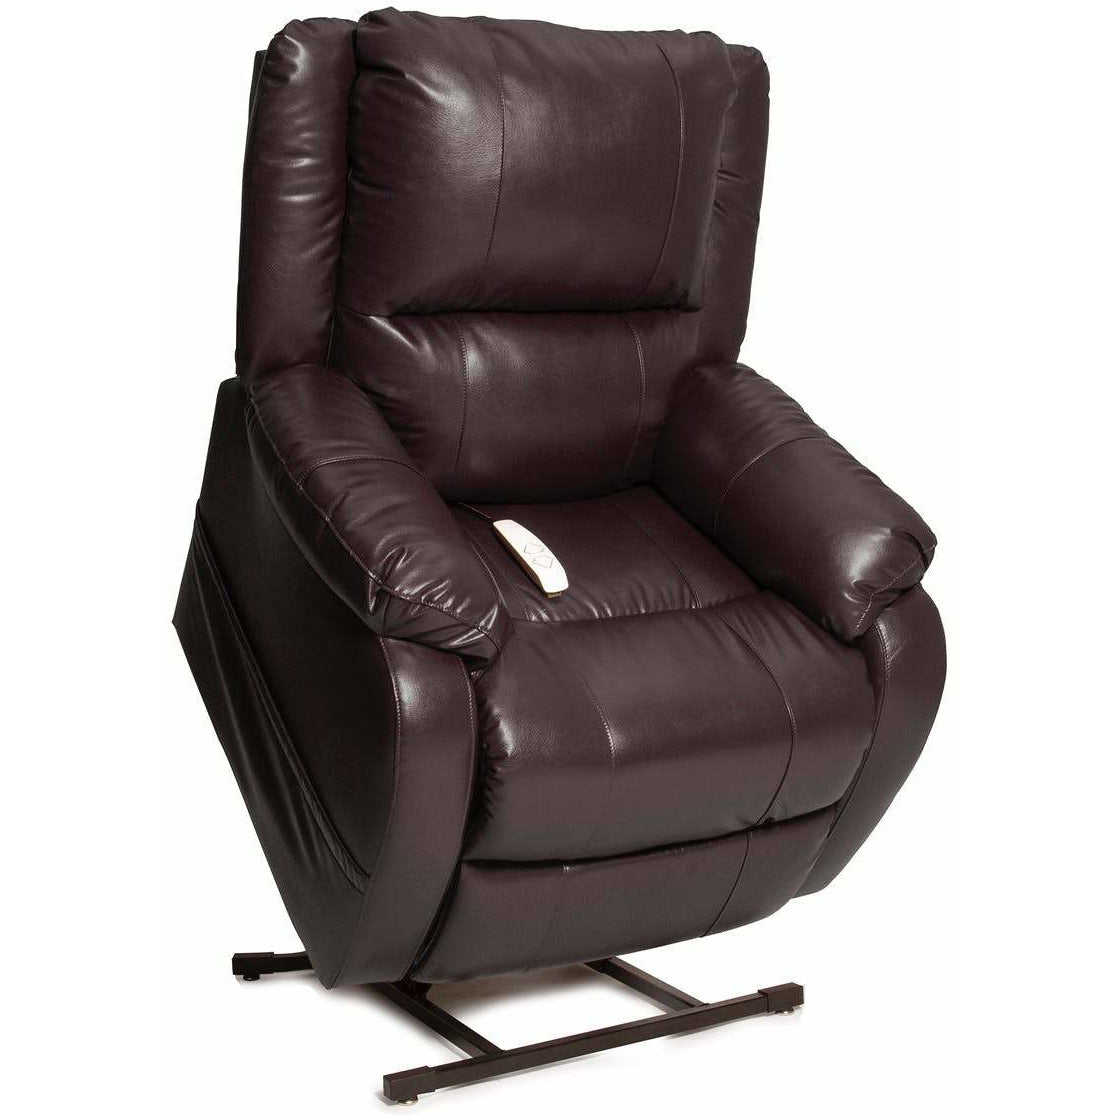 Chestnut 3-Position Reclining Lift Chair